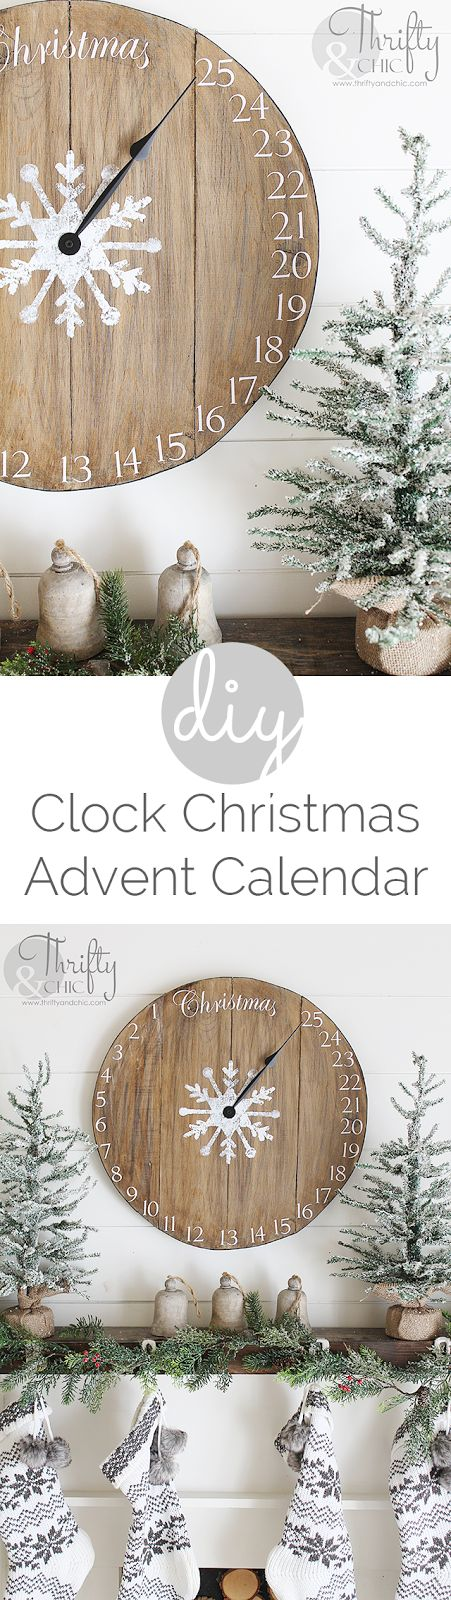 DIY wood clock Christmas advent calendar! Great rustic farmhouse Christmas decor!: